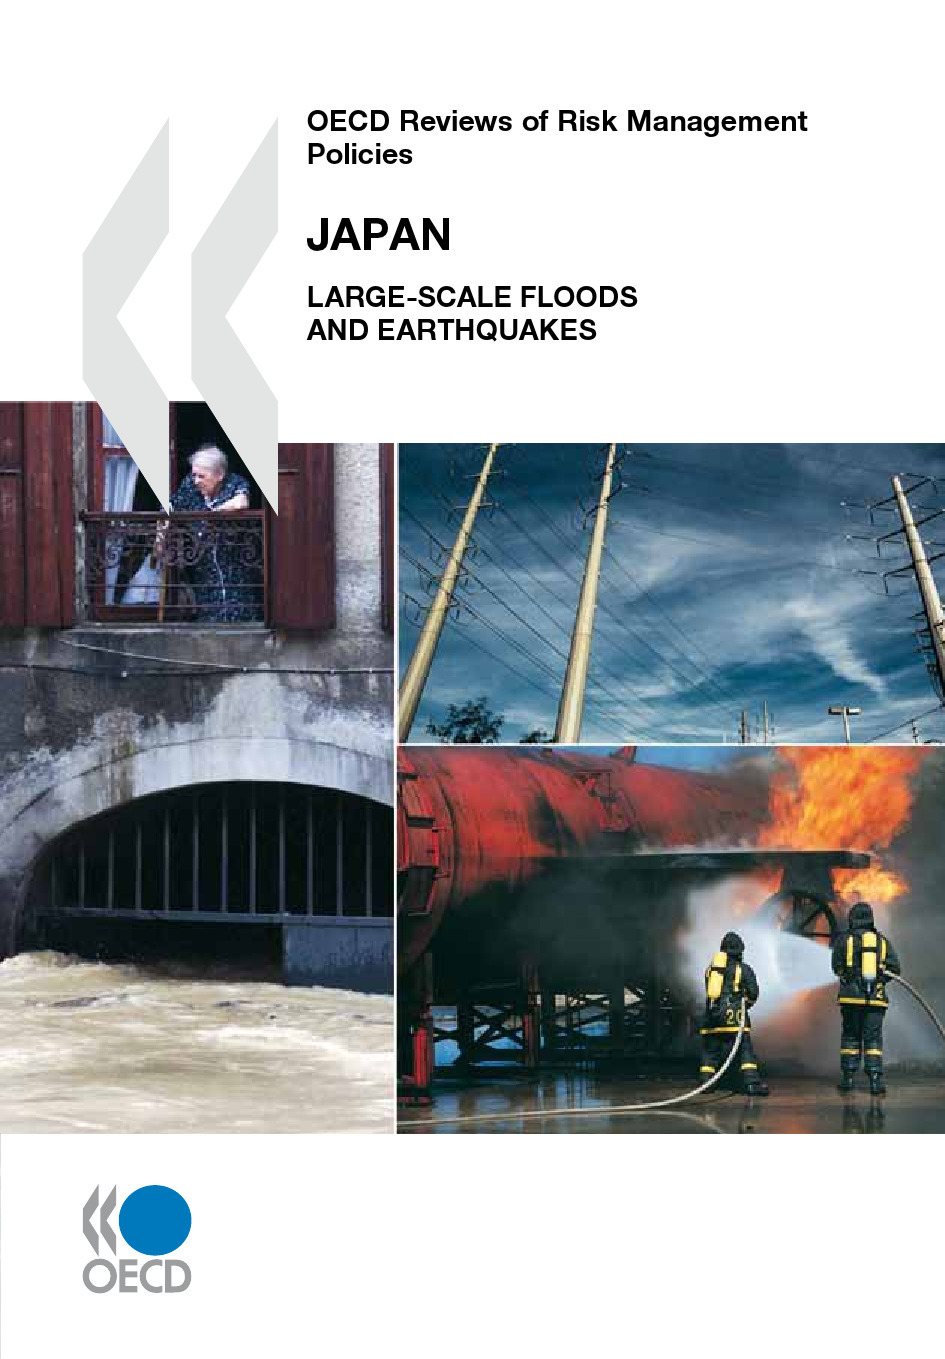 OECD reviews of risk management policies ; Japan ; large-scale floods and earthquakes